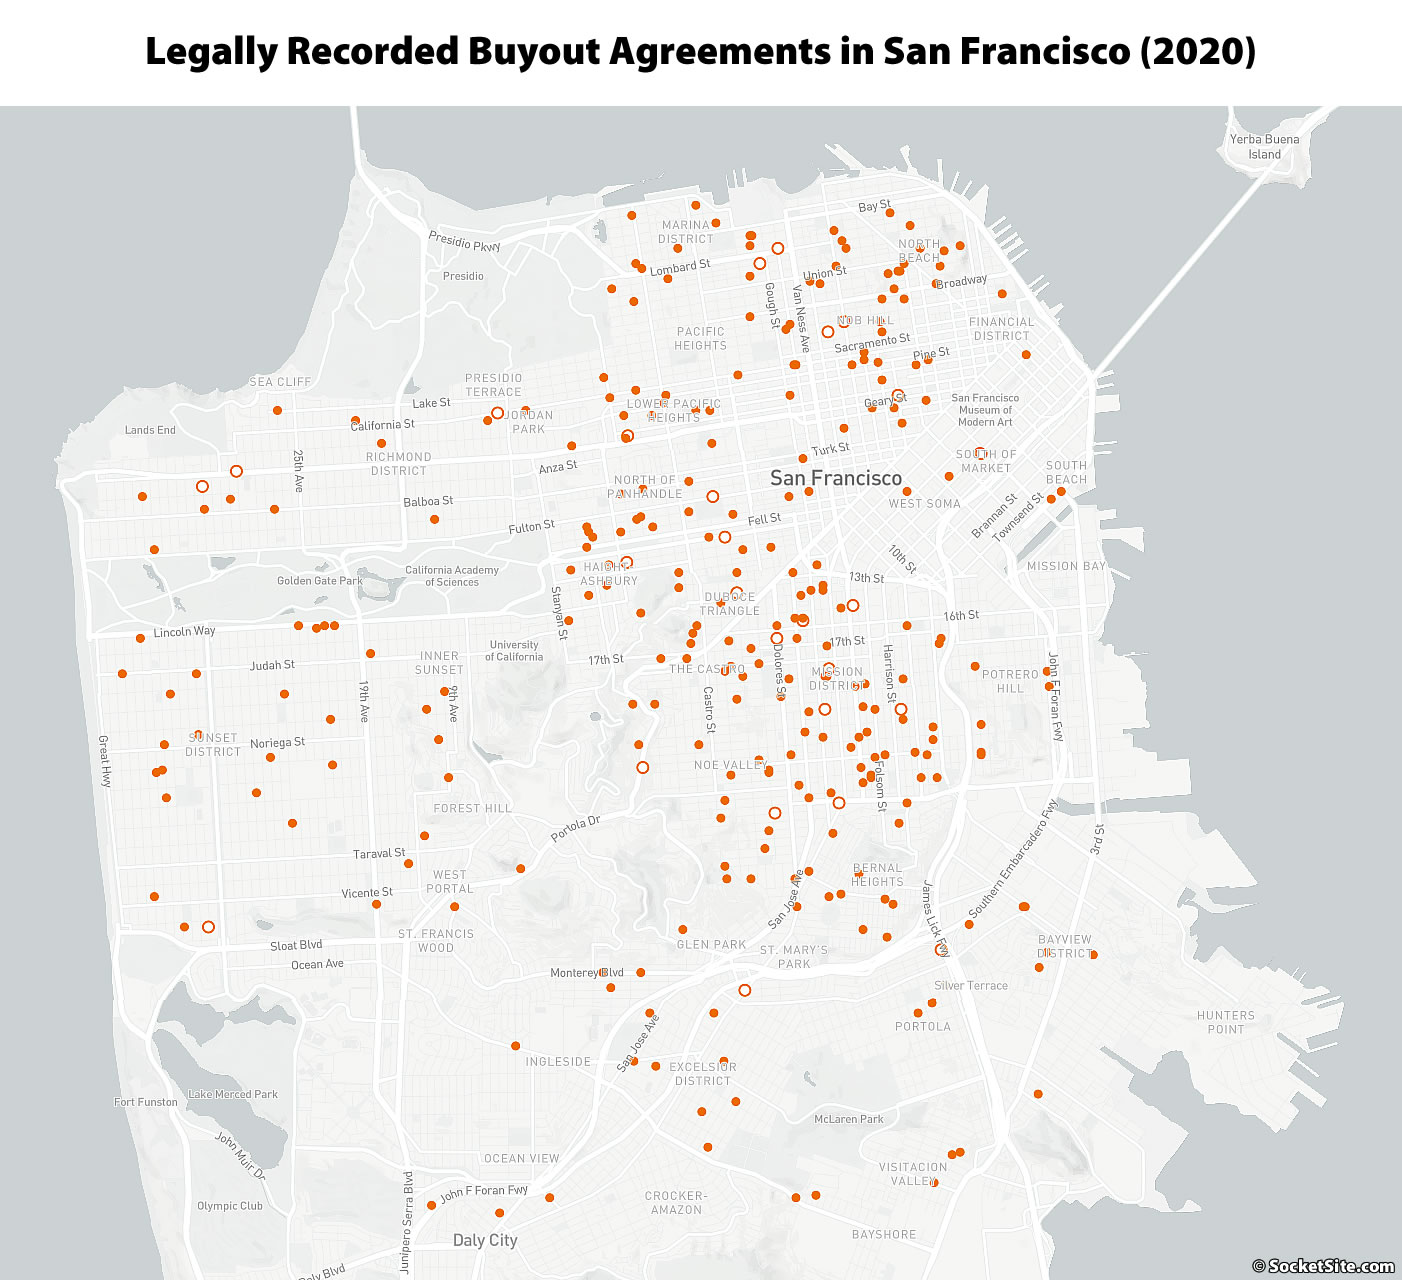 Average Tenant Buyout Was $45K in San Francisco Last Year